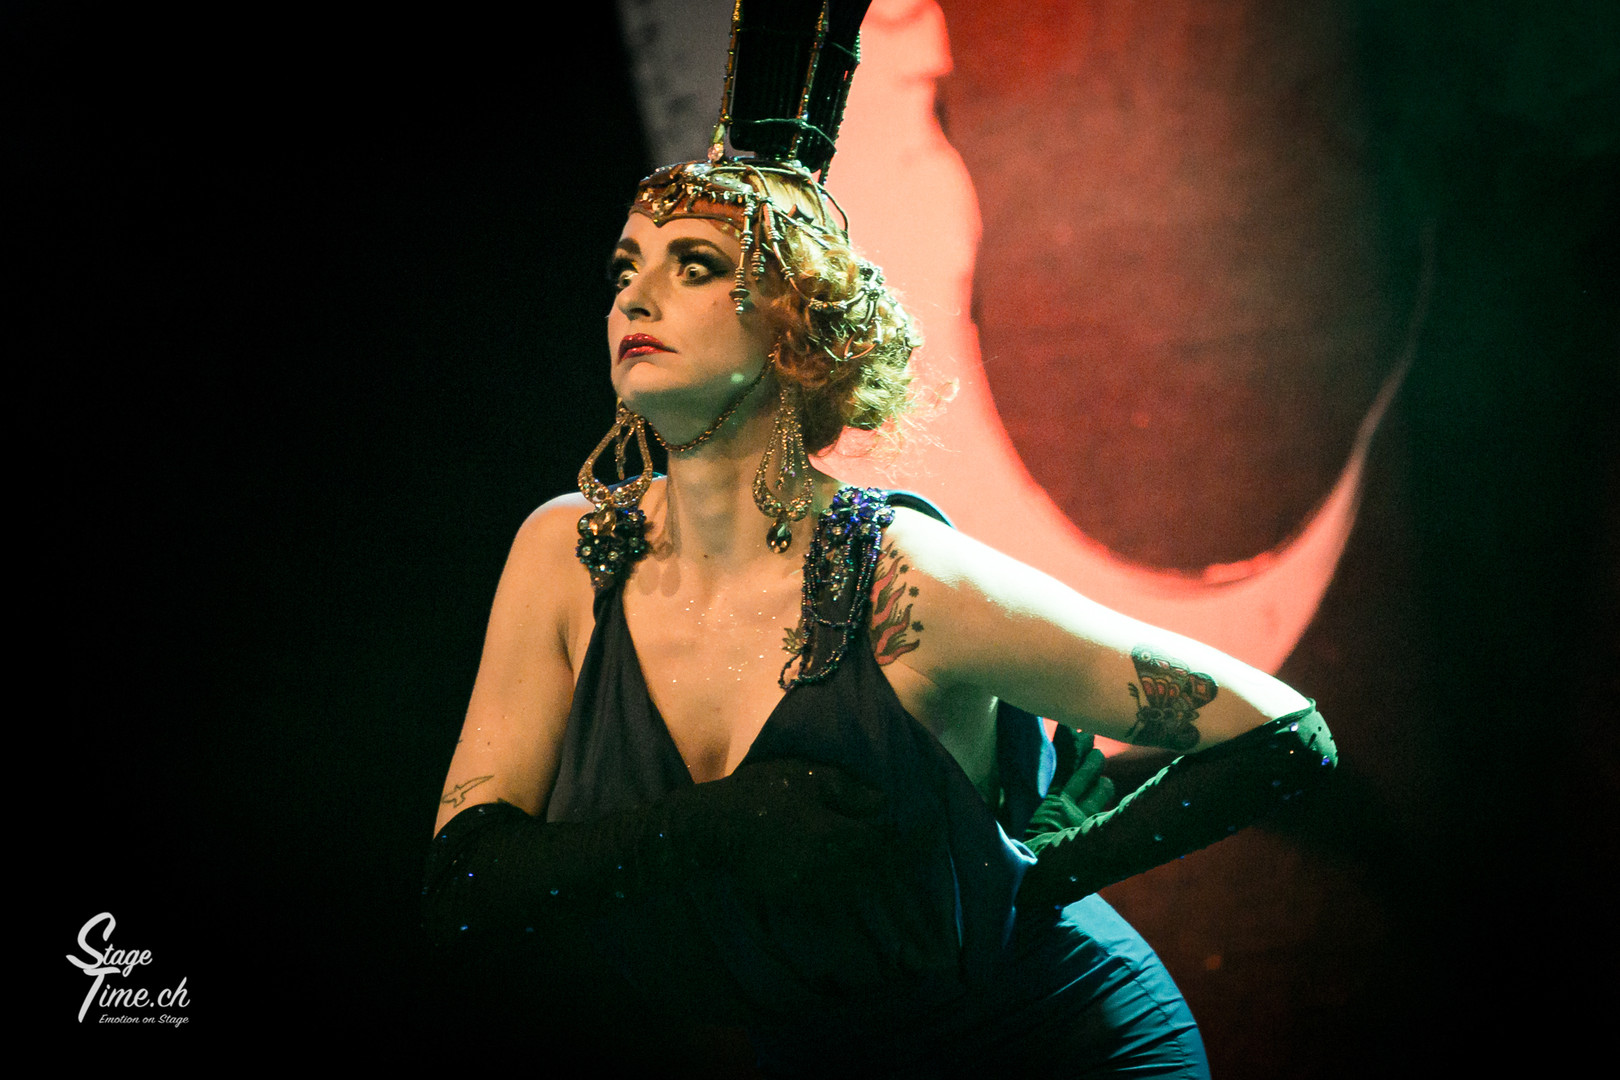 Miss_Cool_Cat_©stagetime.ch-17.jpg